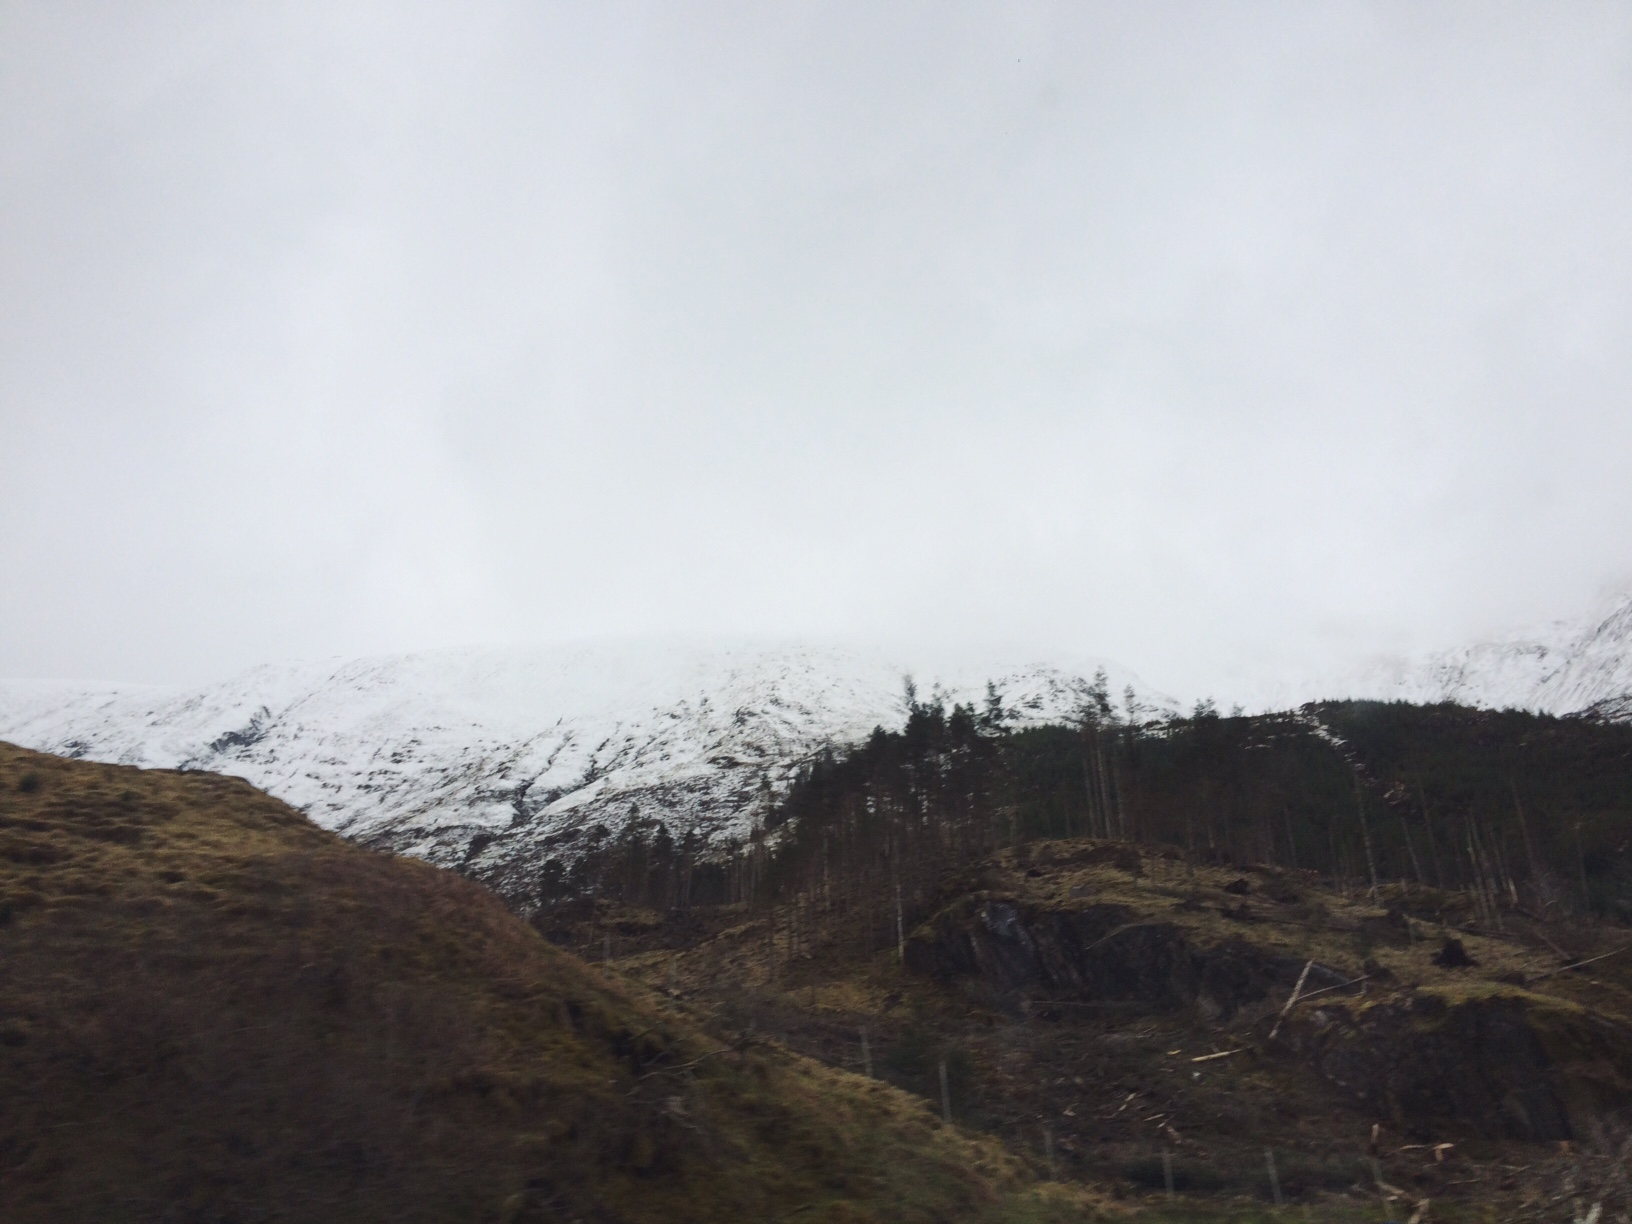 View from the bus - snow!